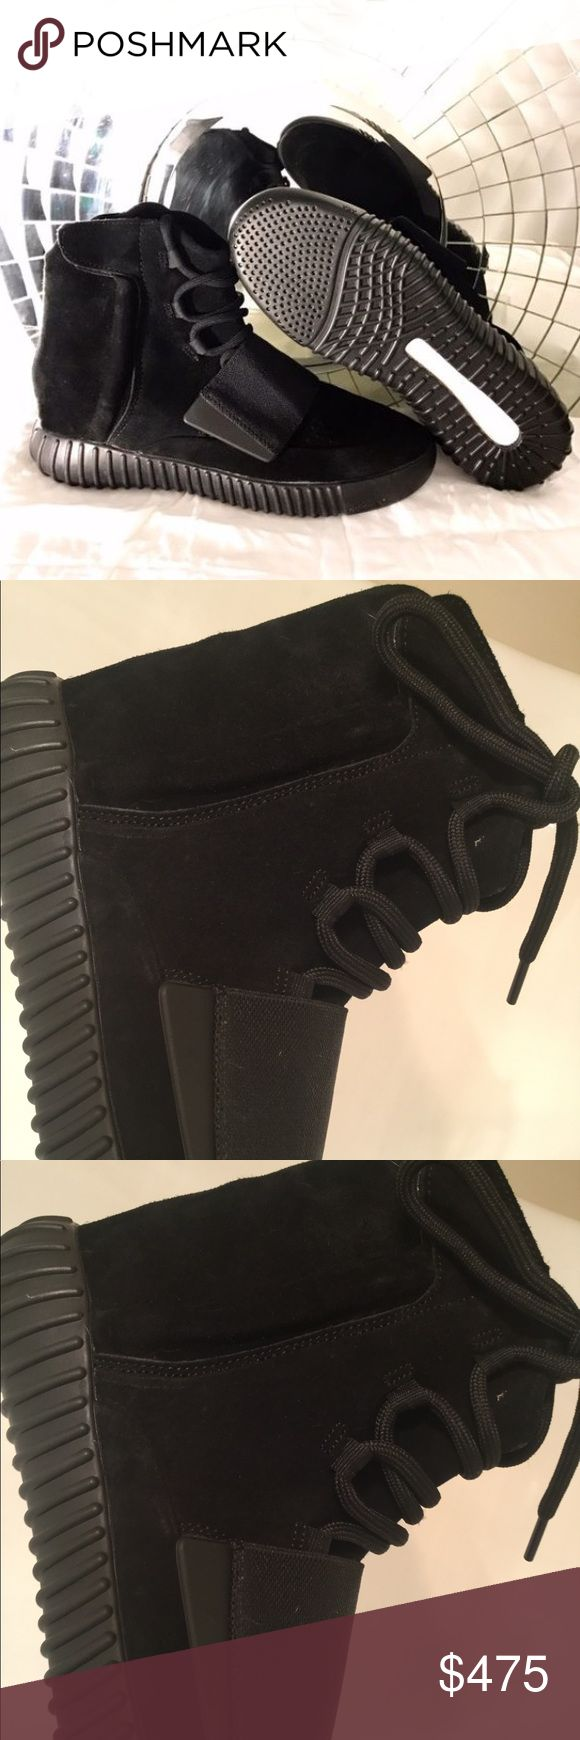 Yeezy 750 Triple Black Boost DEADSTOCK. Size 11.5-12. New never put on. VERY RARE. Price is high because they take a high percentage but let me know if you want to buy elsewhere for a better deal. Yeezy Shoes Sneakers